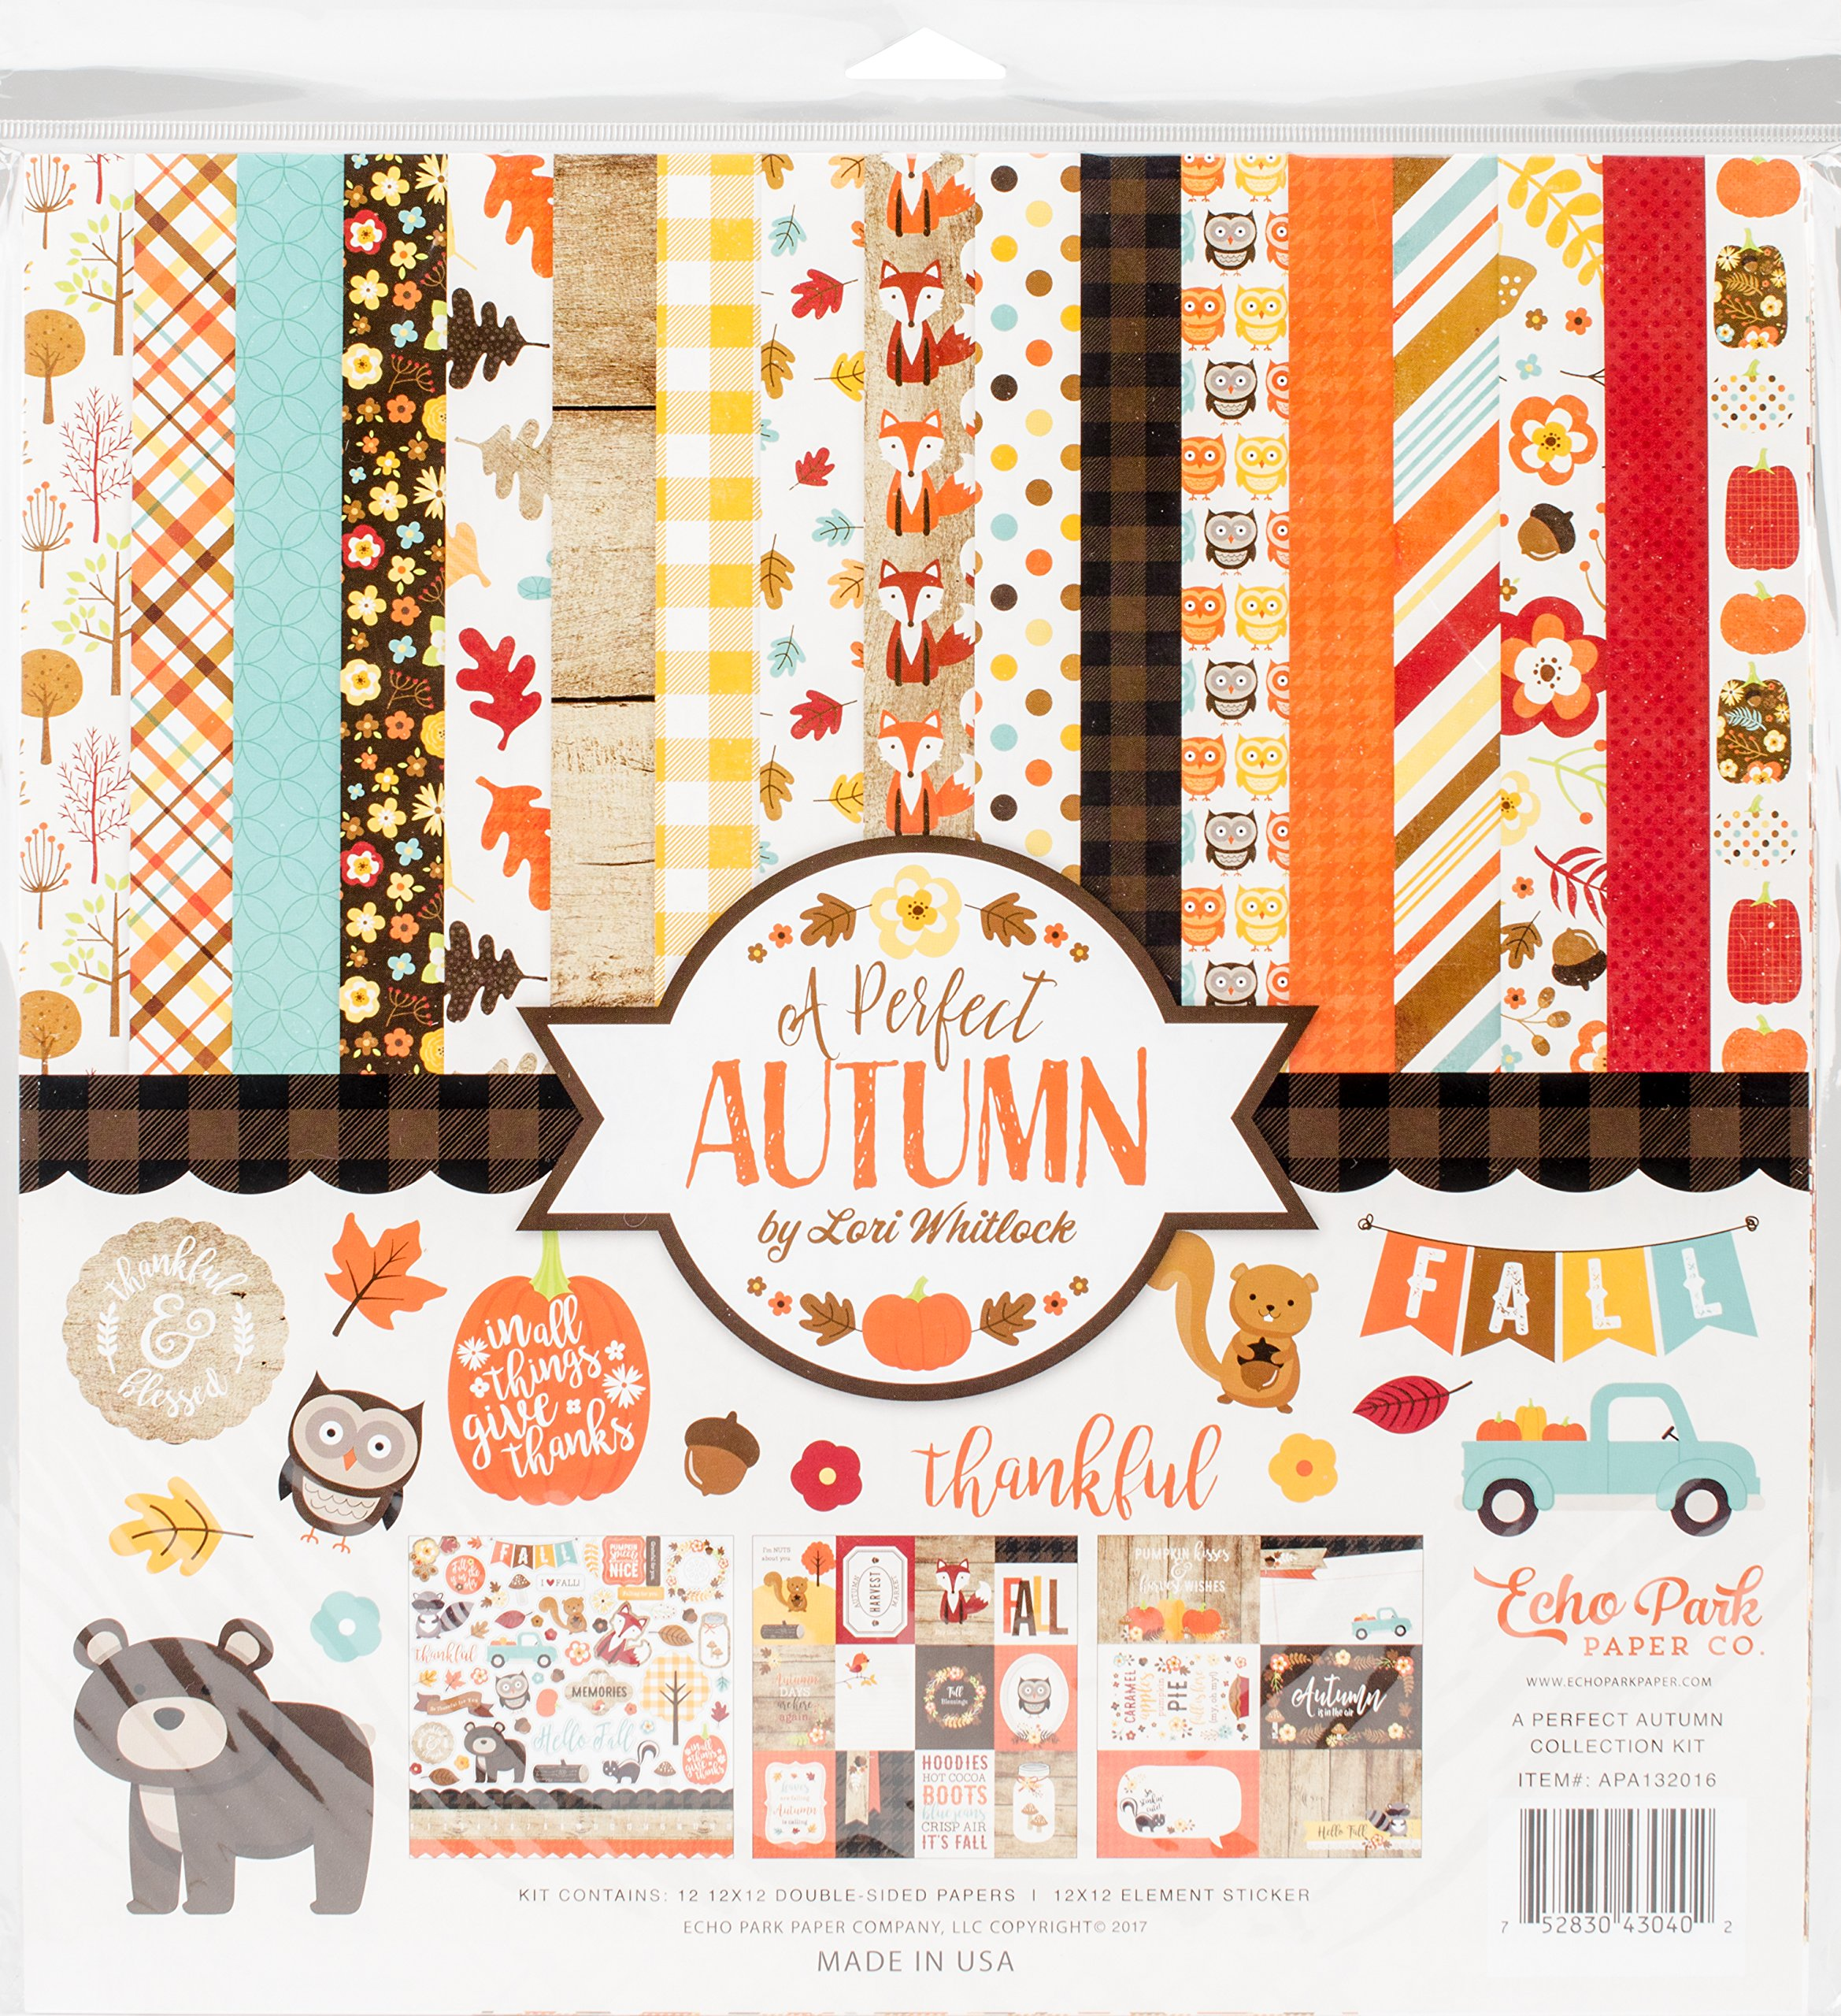 Echo Park Paper Company APA132016 a Perfect Autumn Collection Kit